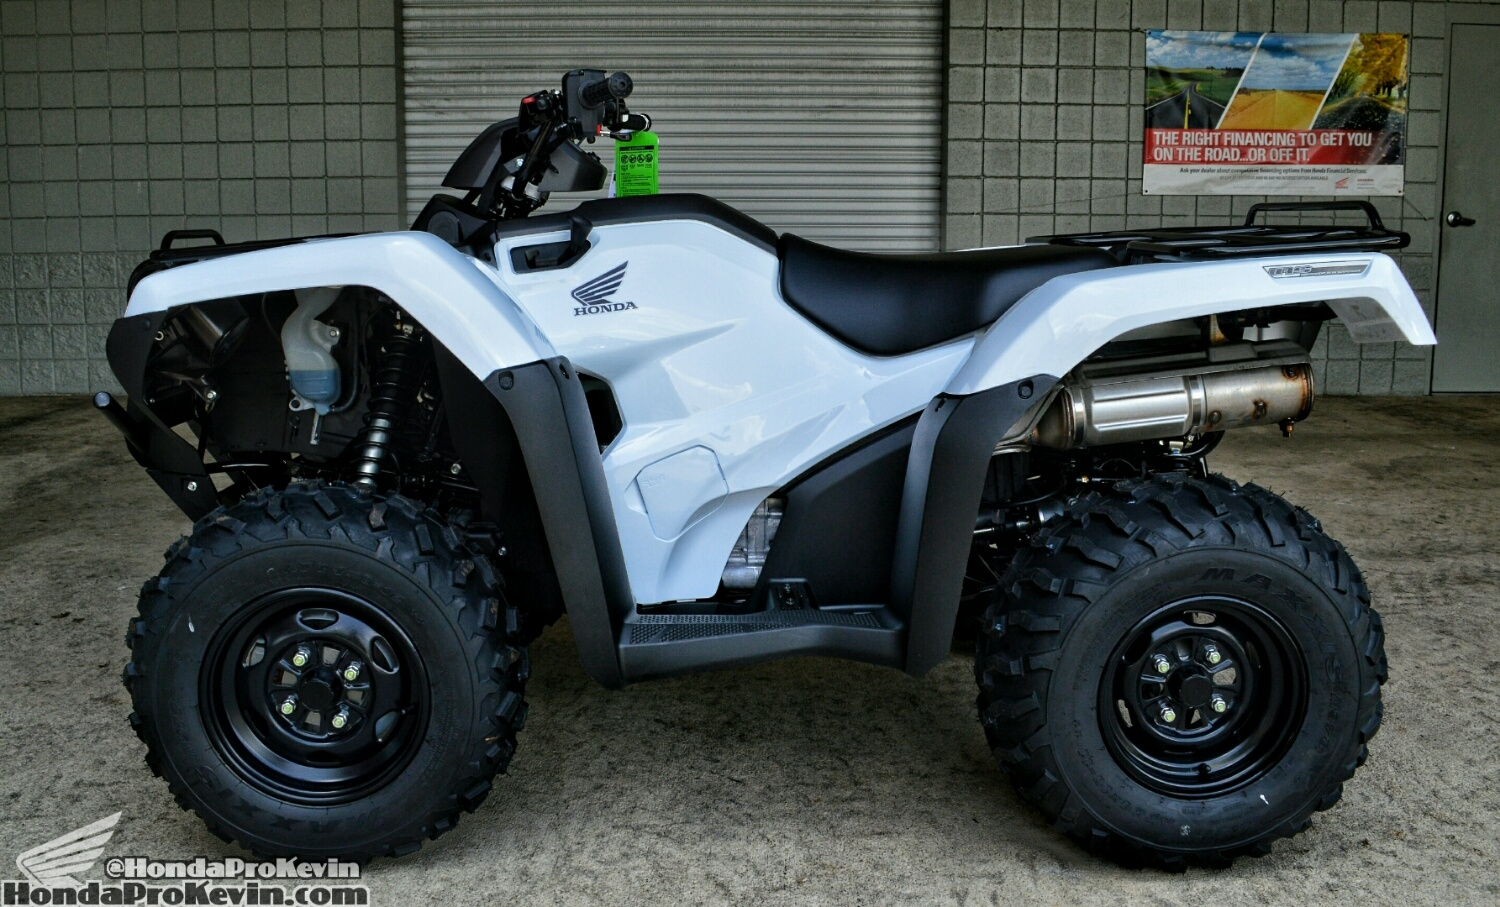 420 Honda Rancher 2017 >> 2016 Rancher 420 DCT IRS / EPS - ATV Review, Specs, Price, Pictures & Videos